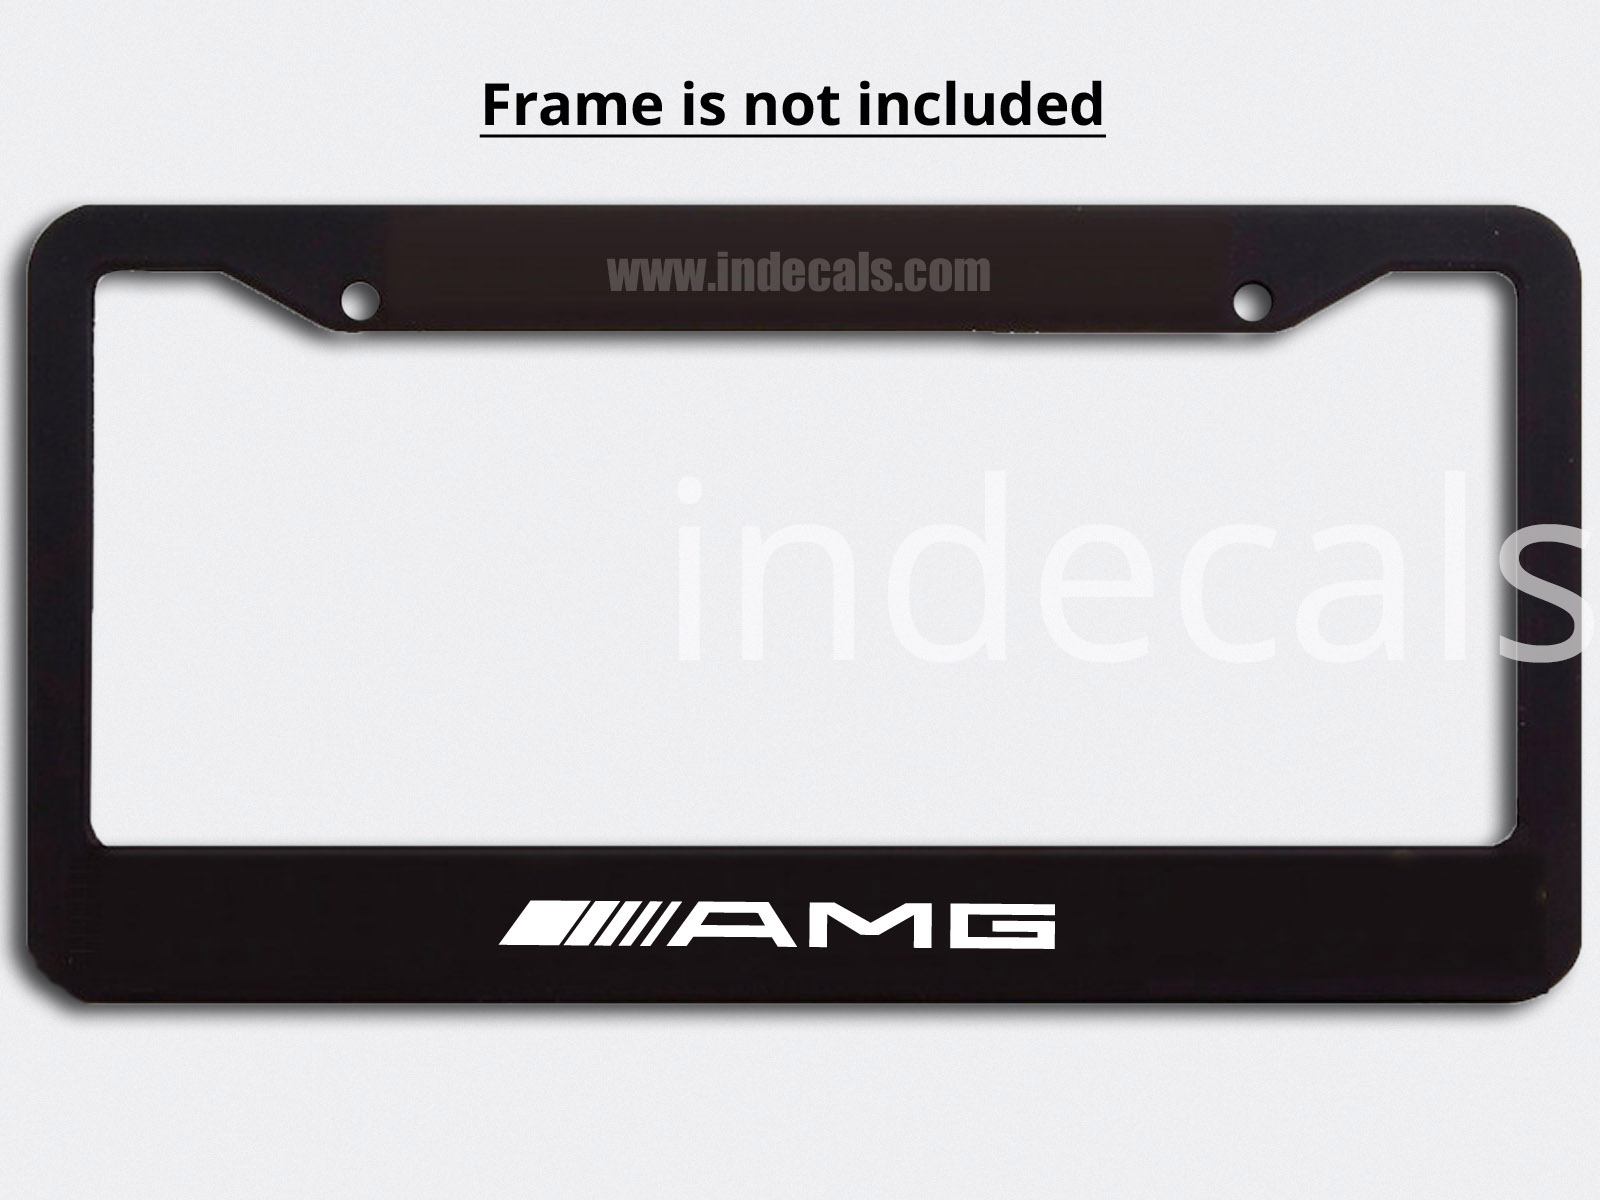 3 x AMG Stickers for Plate Frame - White